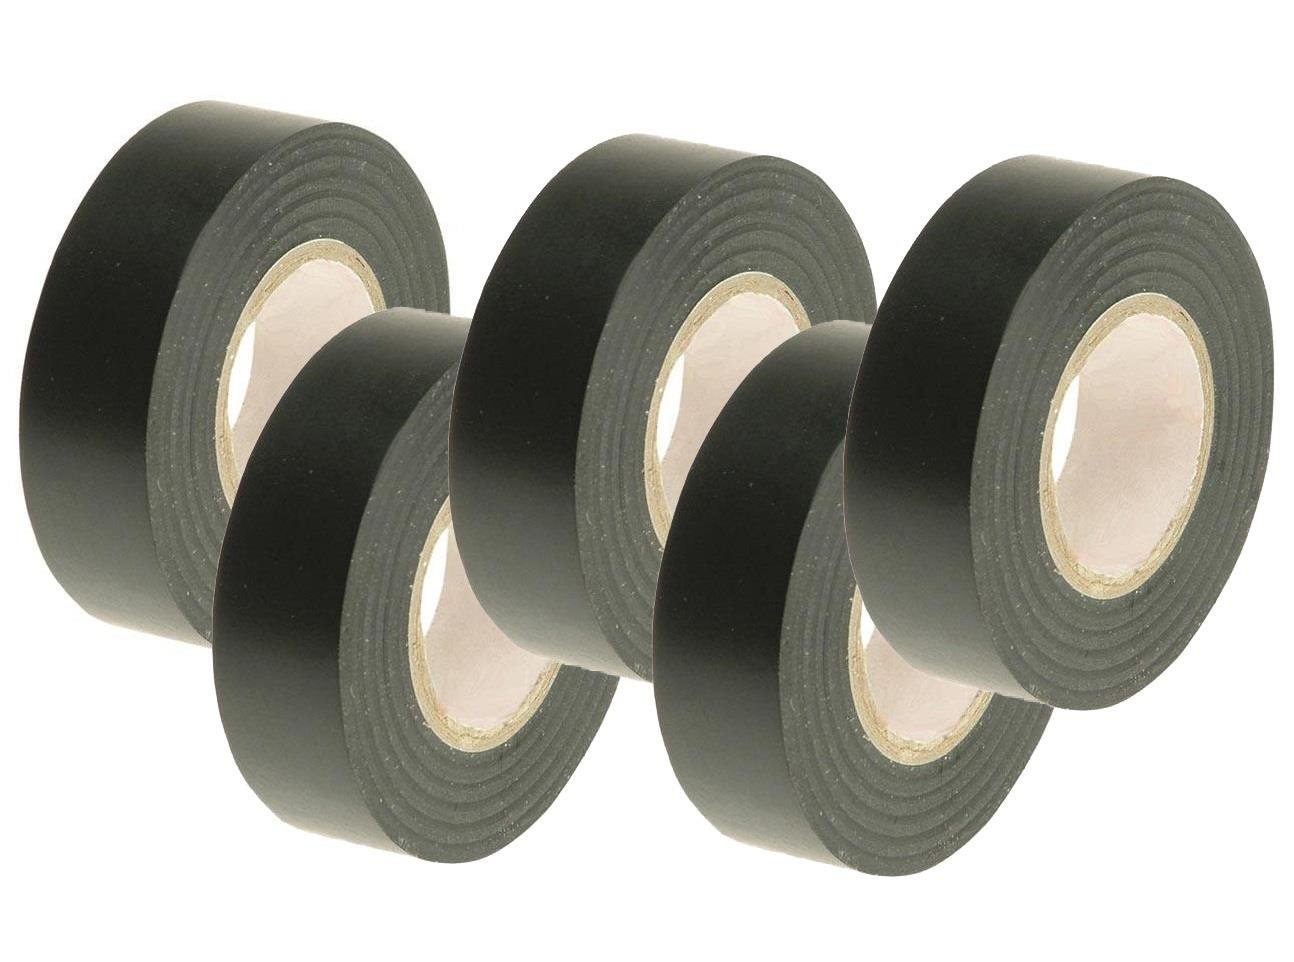 5x Home House Electrician Electrical Pvc Black Cable Repair Fix Insulation Tapes AutoPower